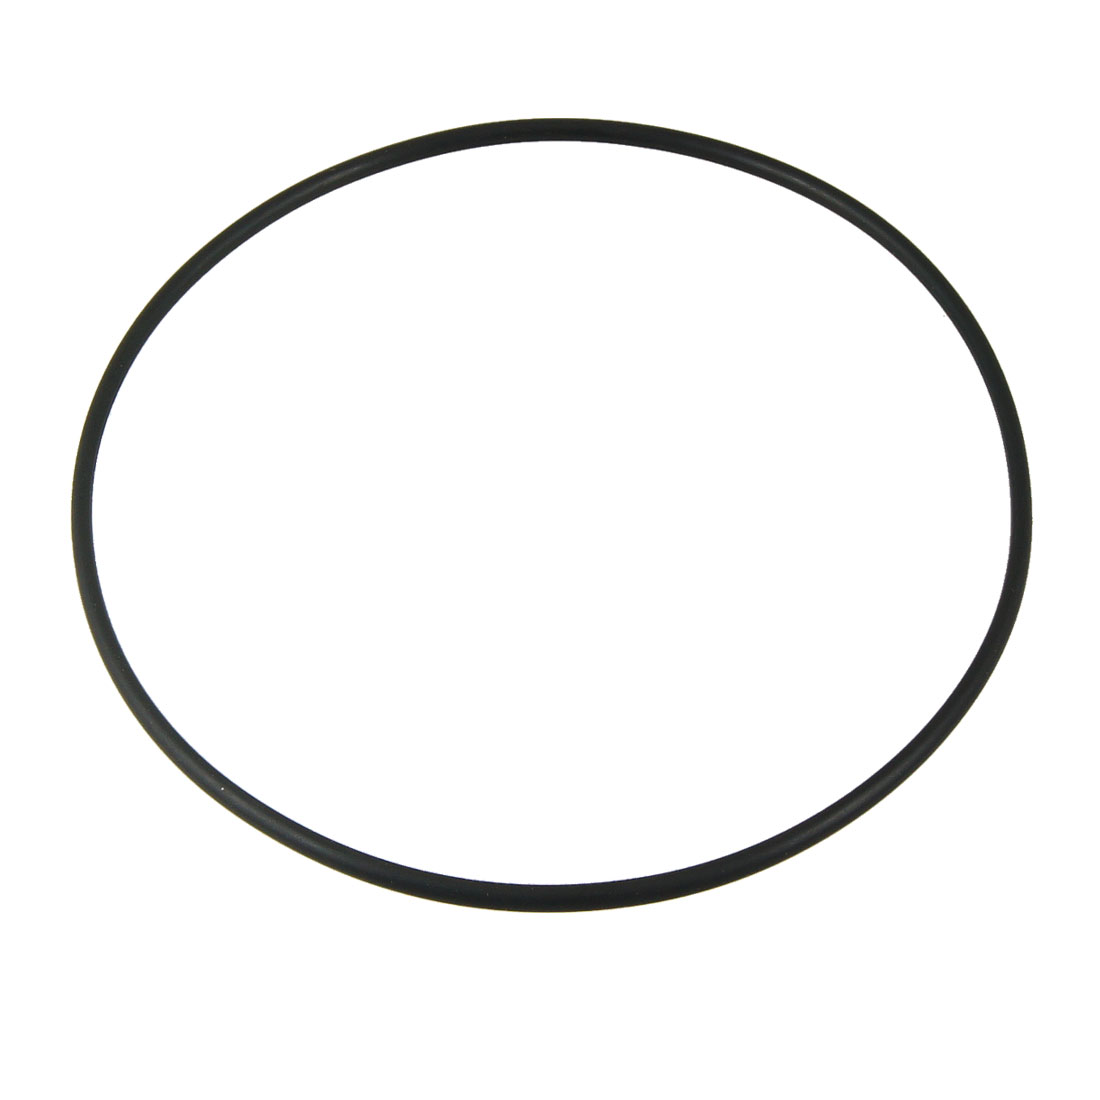 160mm x 3.5mm x 153mm Rubber Sealing Oil Filter O Rings Gaskets